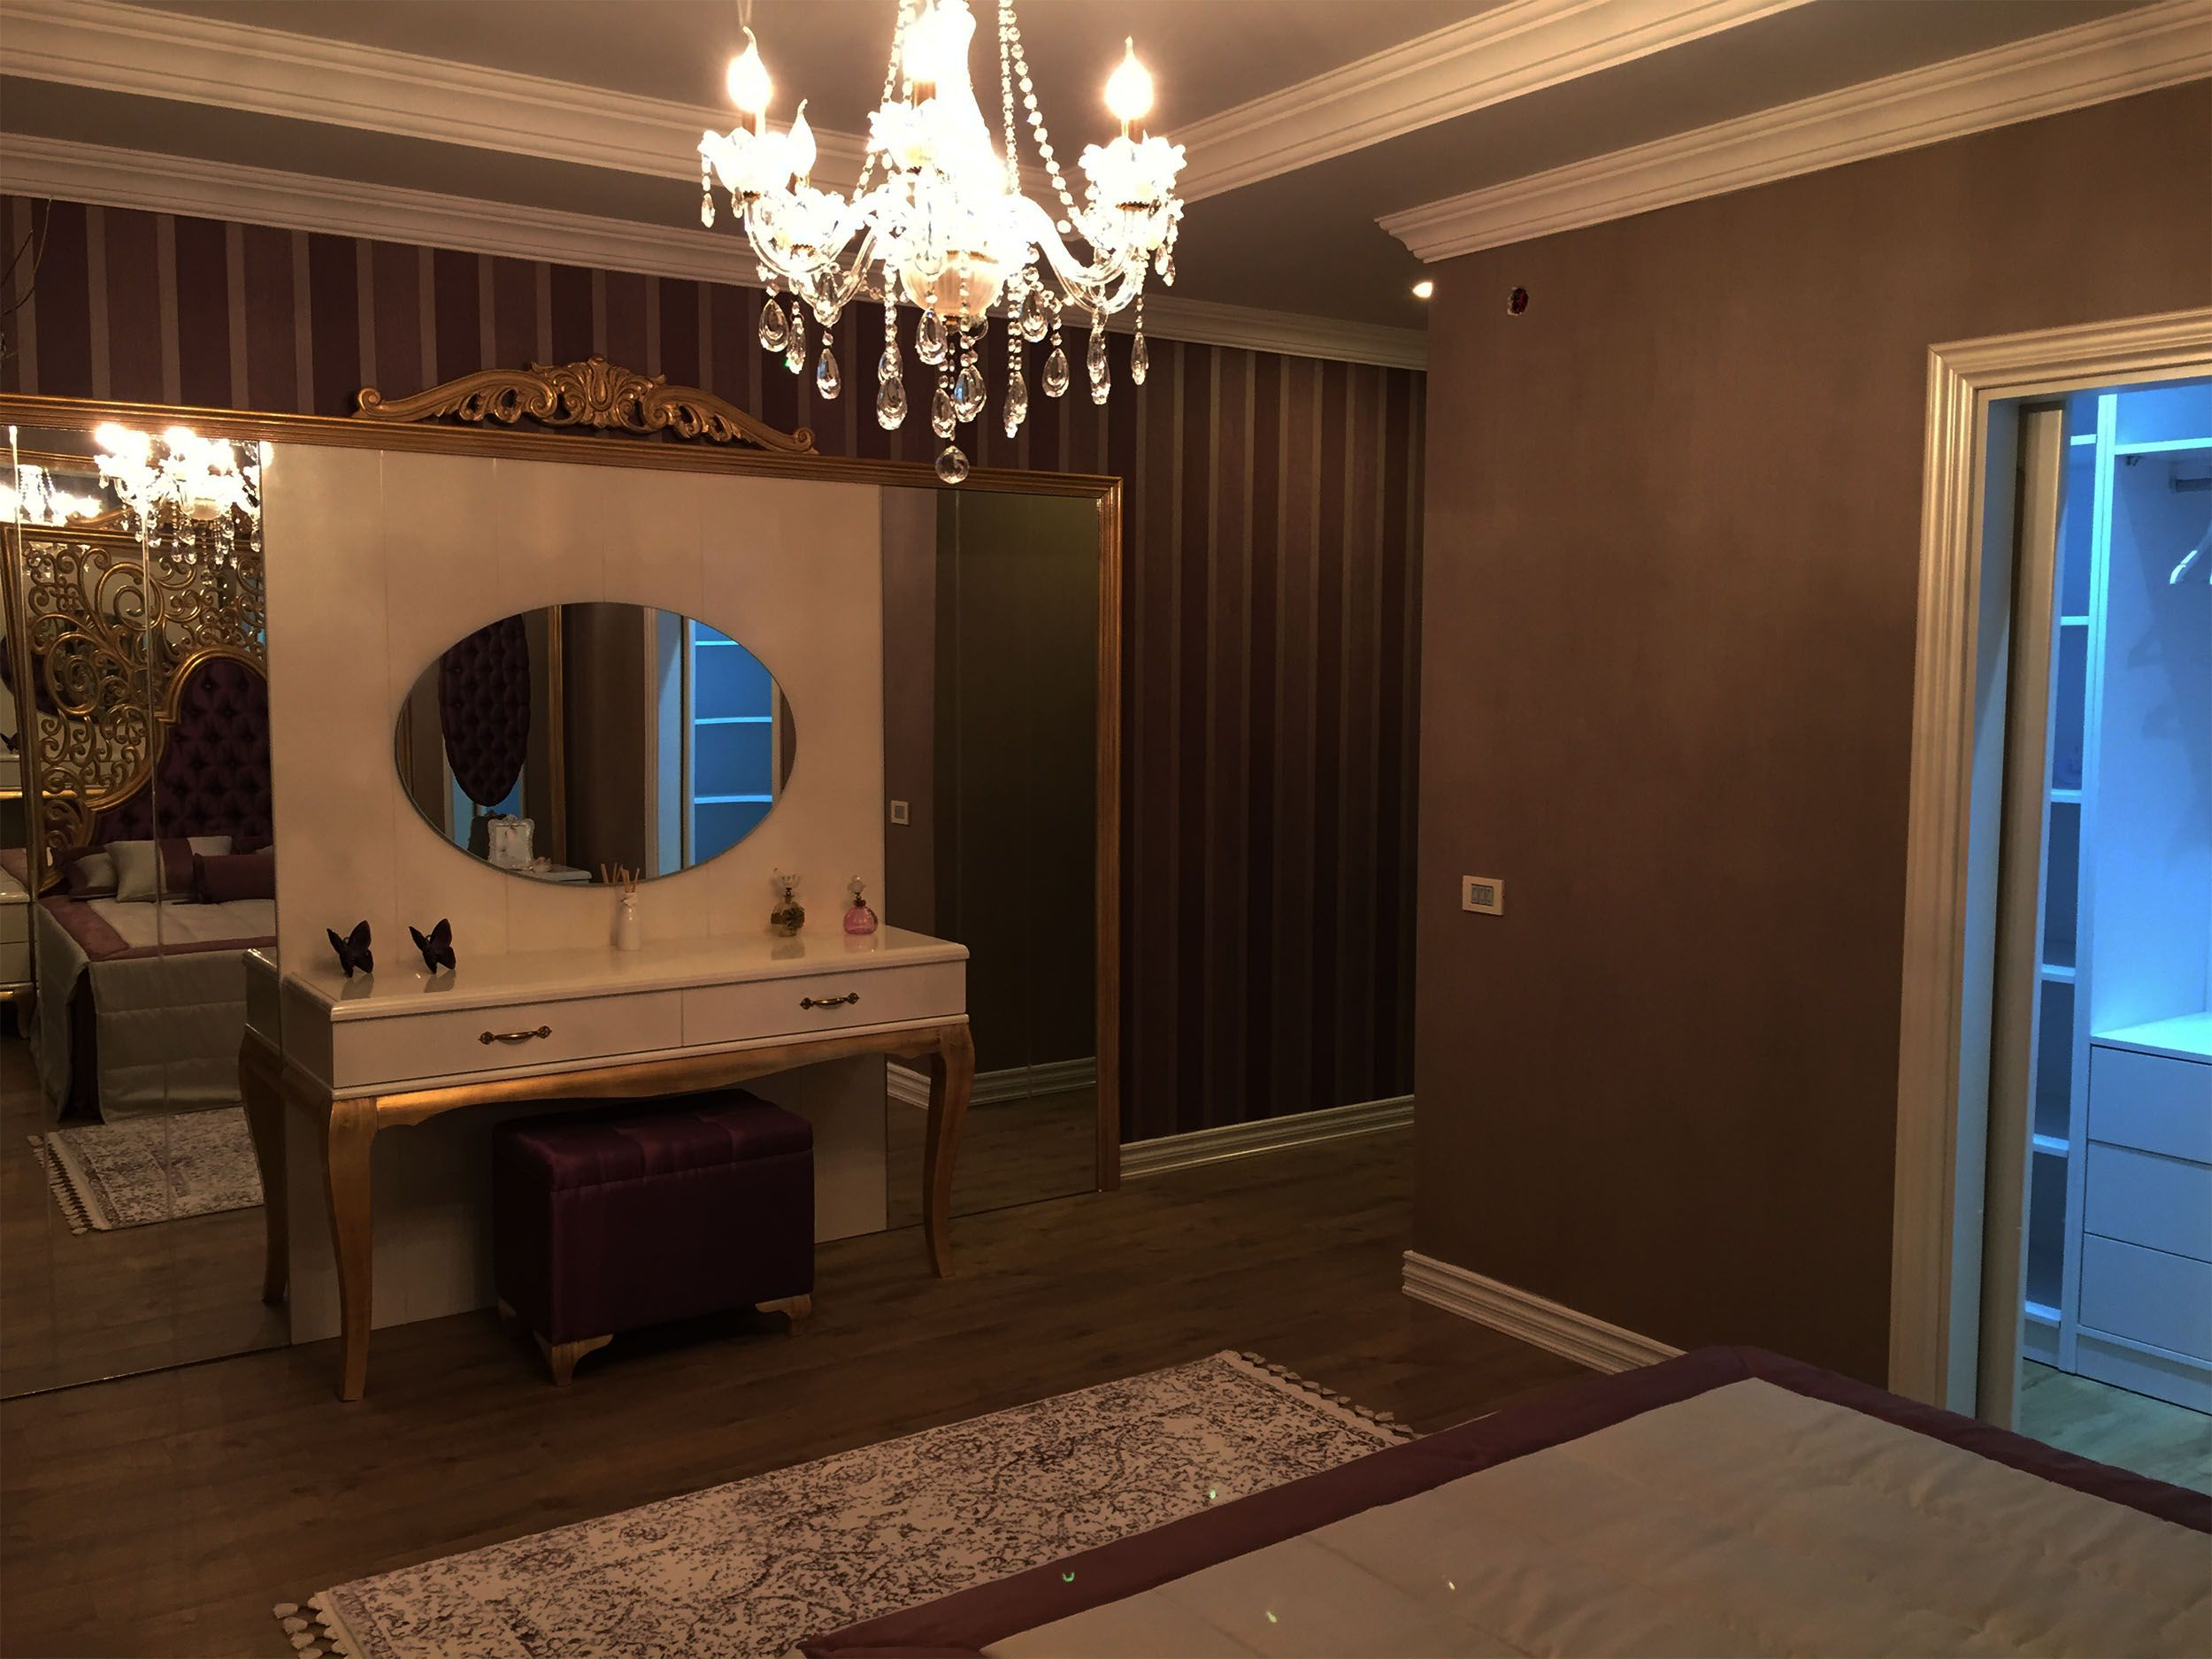 Considering The Best Bedroom Lighting Ideas For The Aesthetic Appeal is part of bedroom Aesthetic Lights - Lighting can bring a change in the appearance of a room  Considering the right bedroom light is essential  It will make your bedroom look appealing